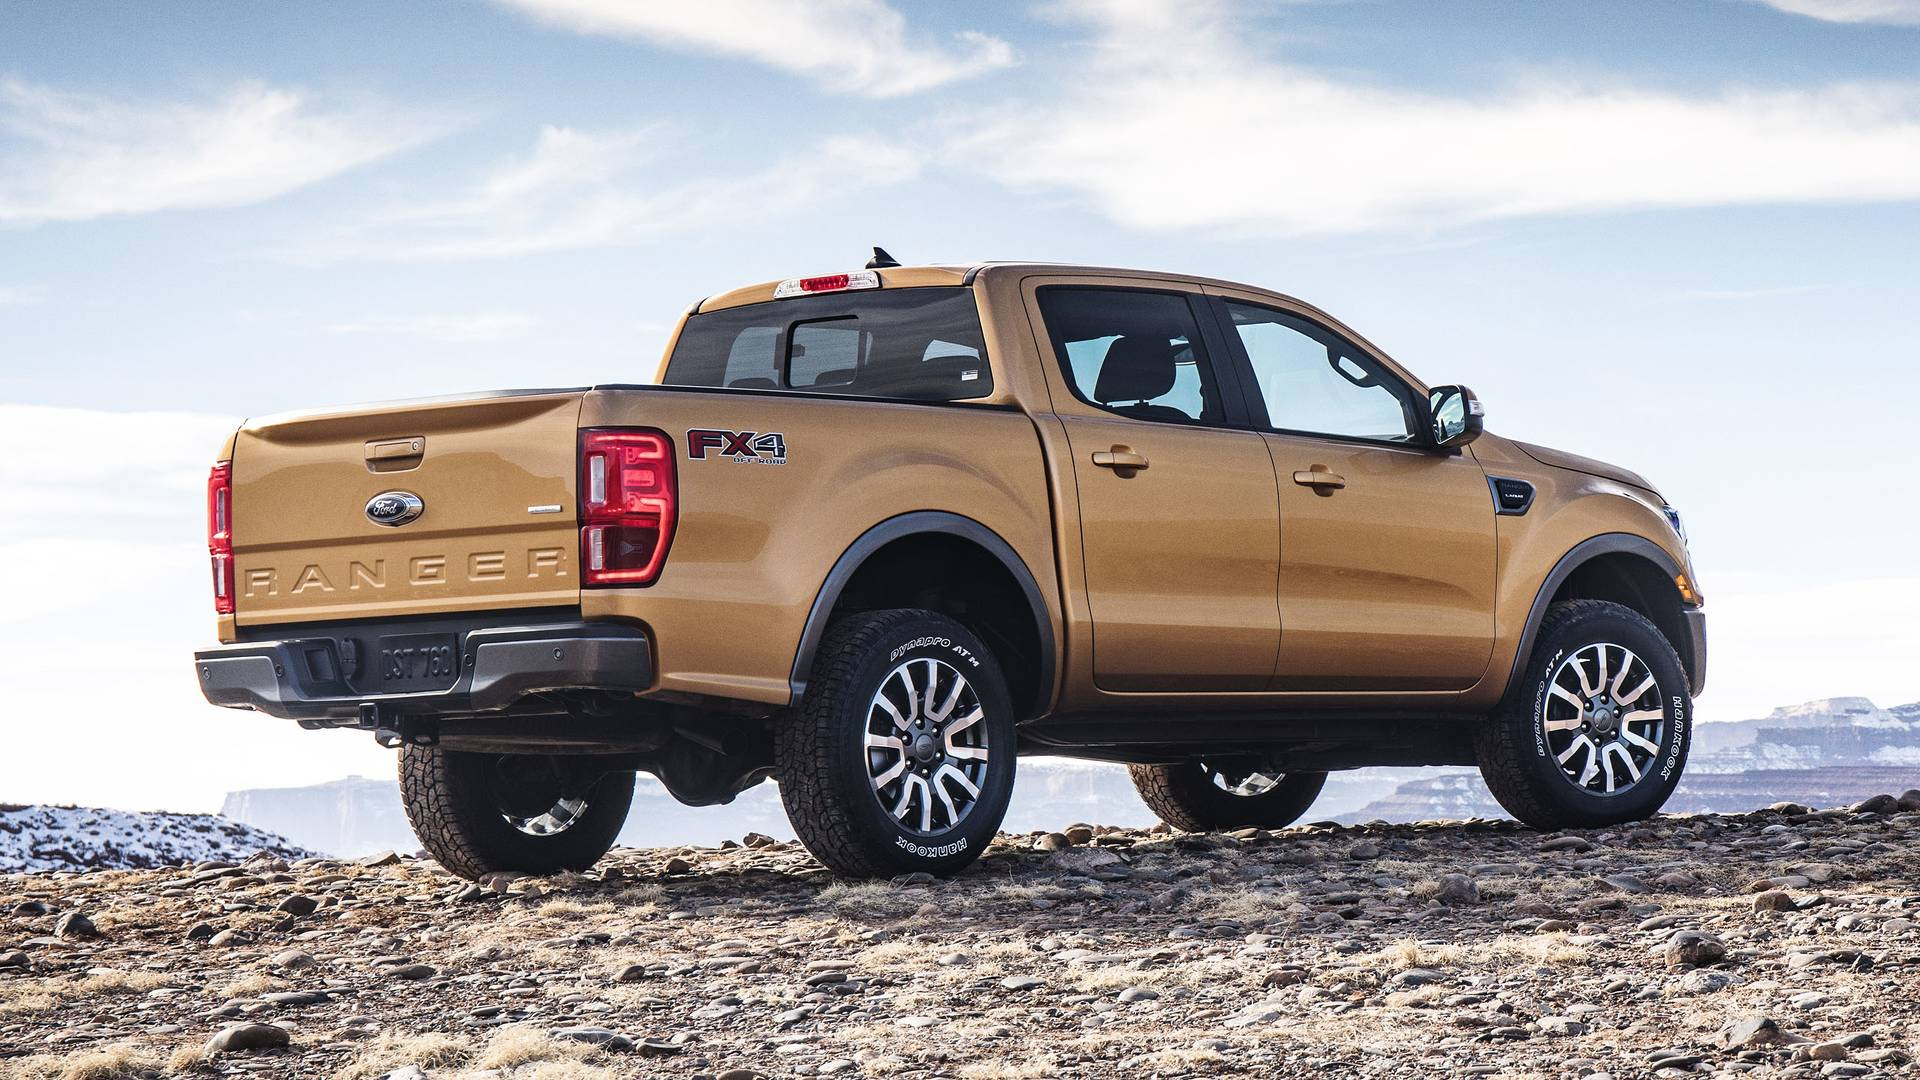 How The Ford Ranger pares To Its Midsize Truck Rivals